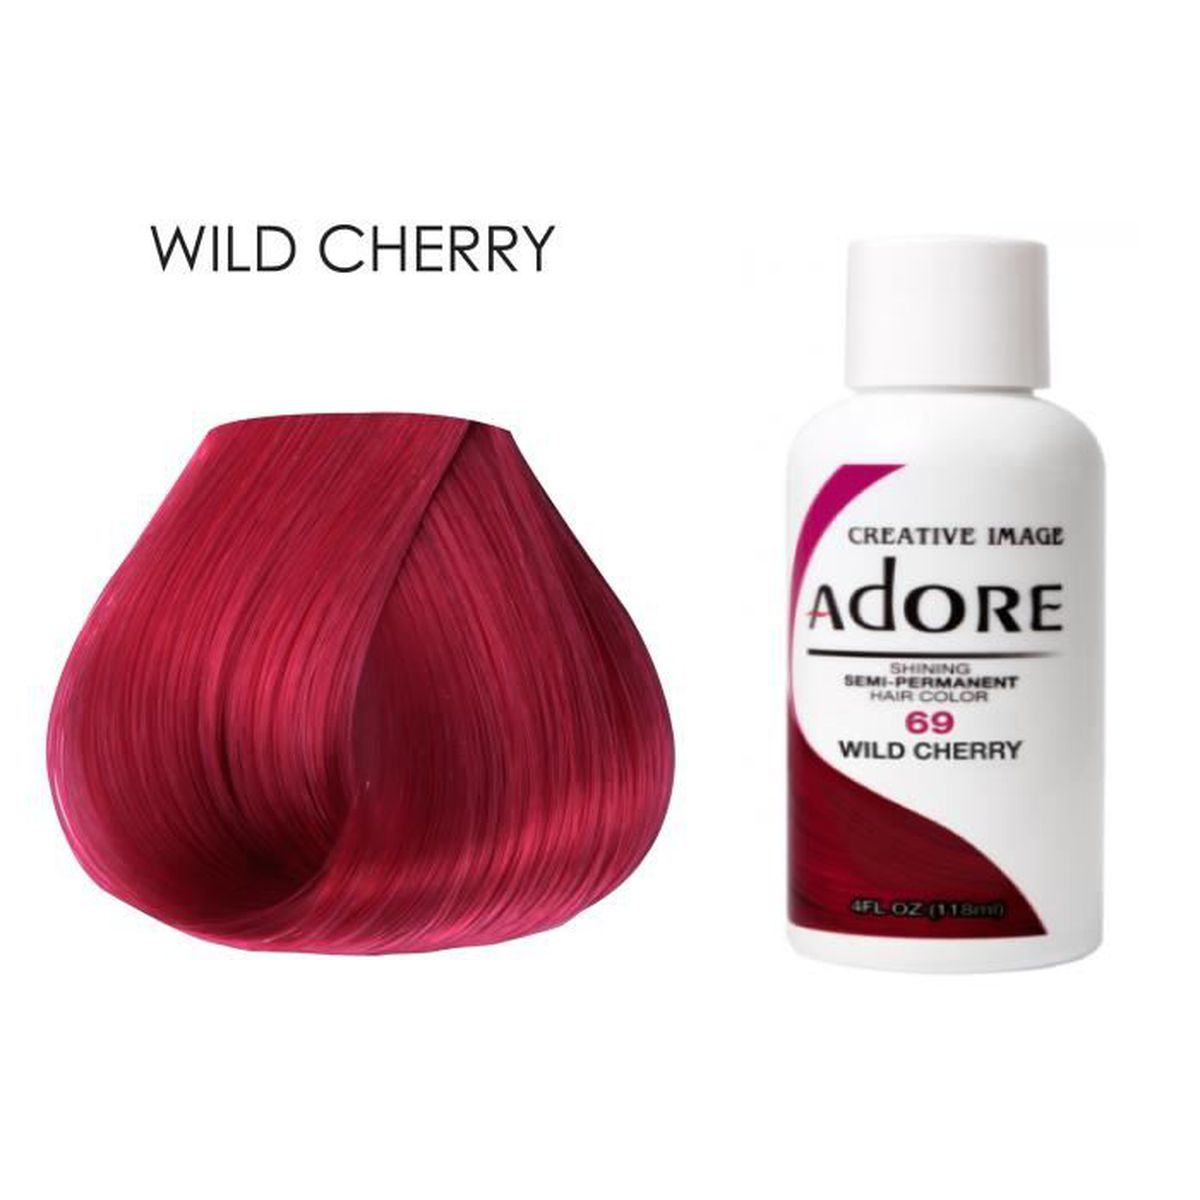 Adore Wild Cherry Hair Color Image Of Hair Salon And Hair Color